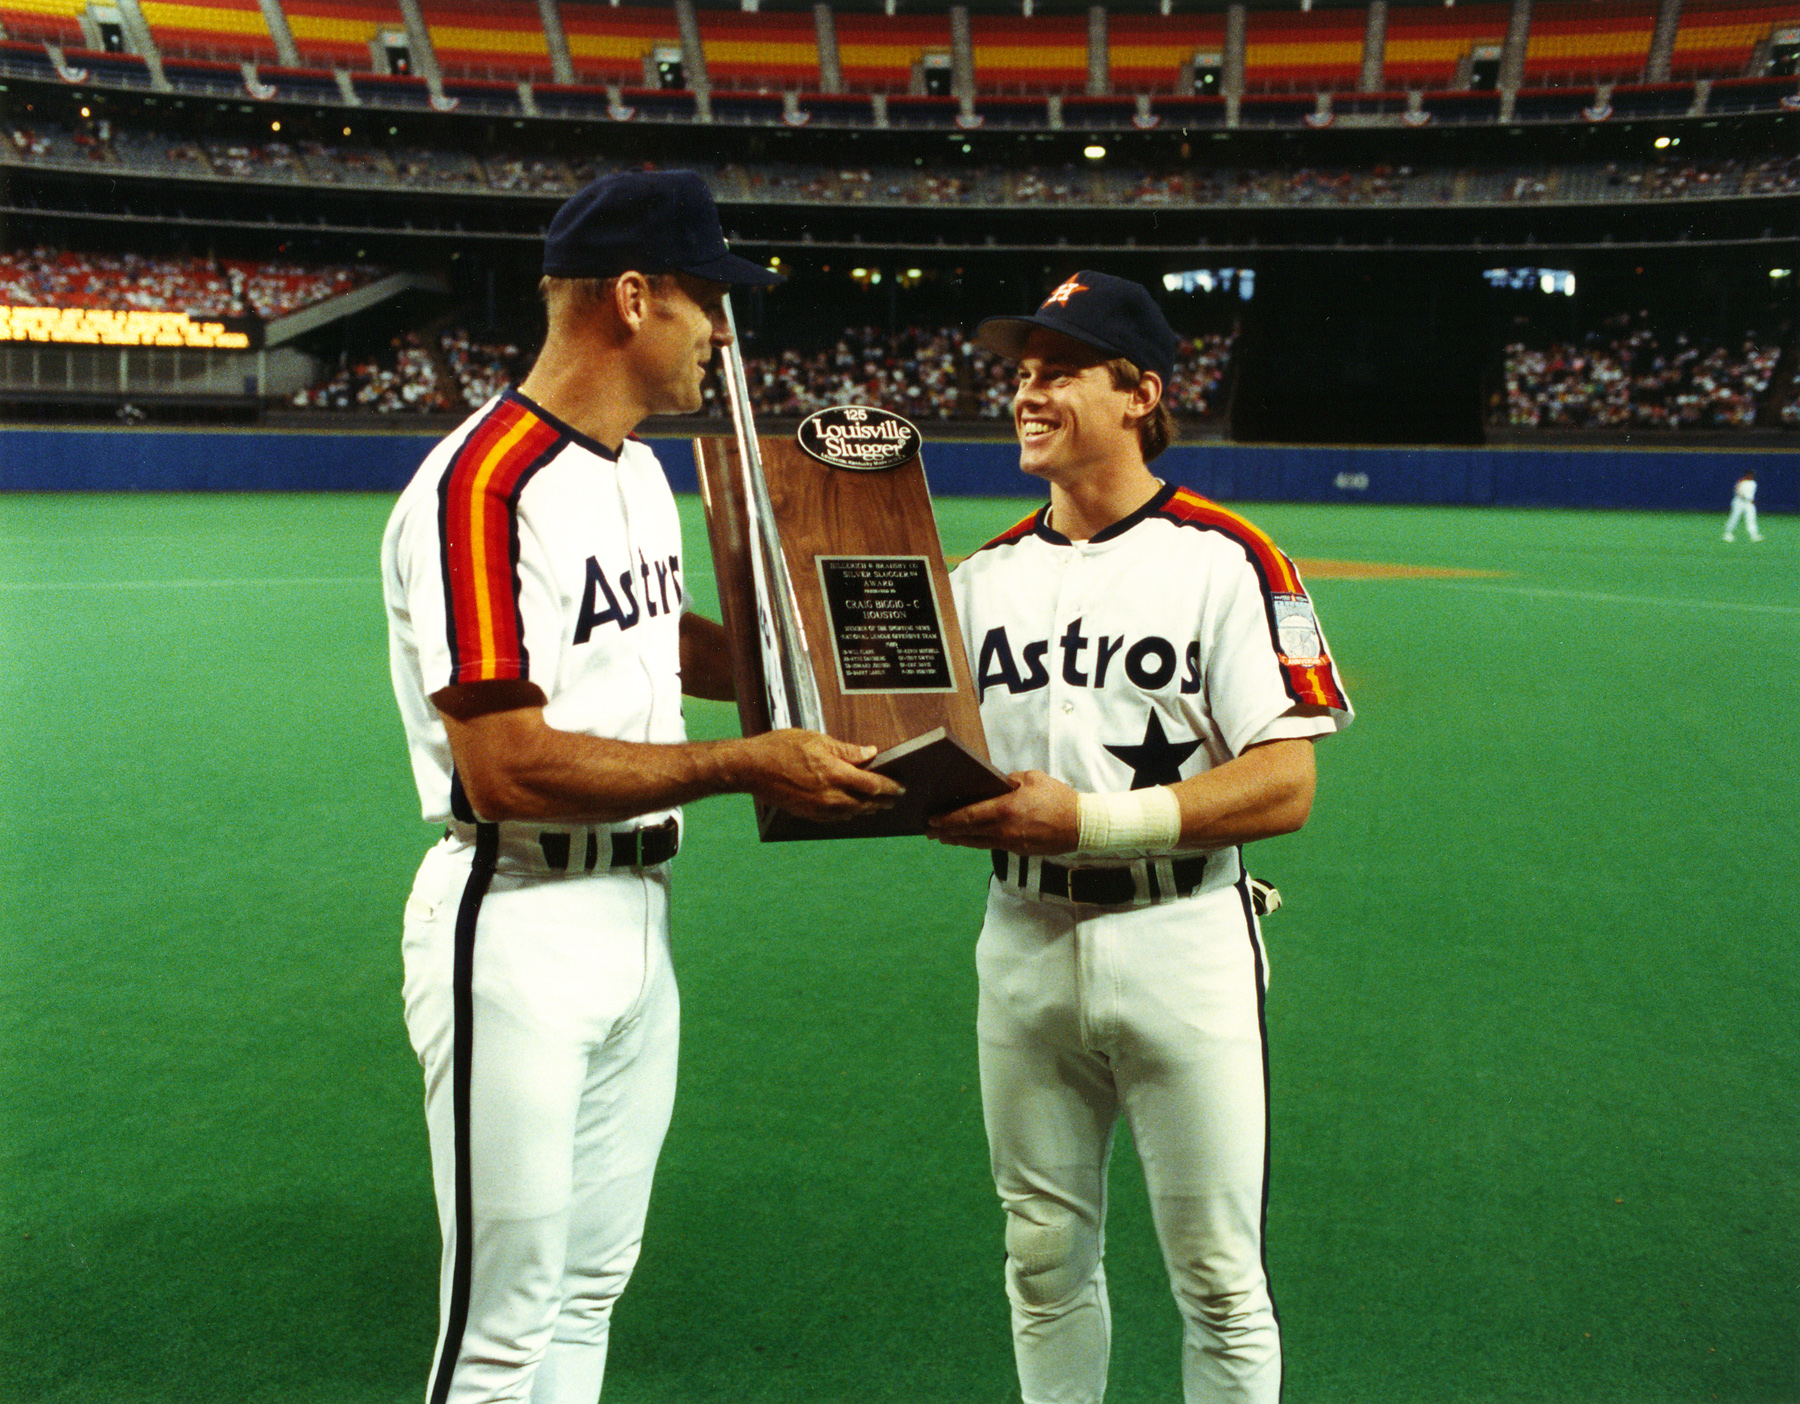 The Astrodome saw its share of stars over the years, including Biggio, who receives his 1989 Silver Slugger Award from manager Art Howe, left.